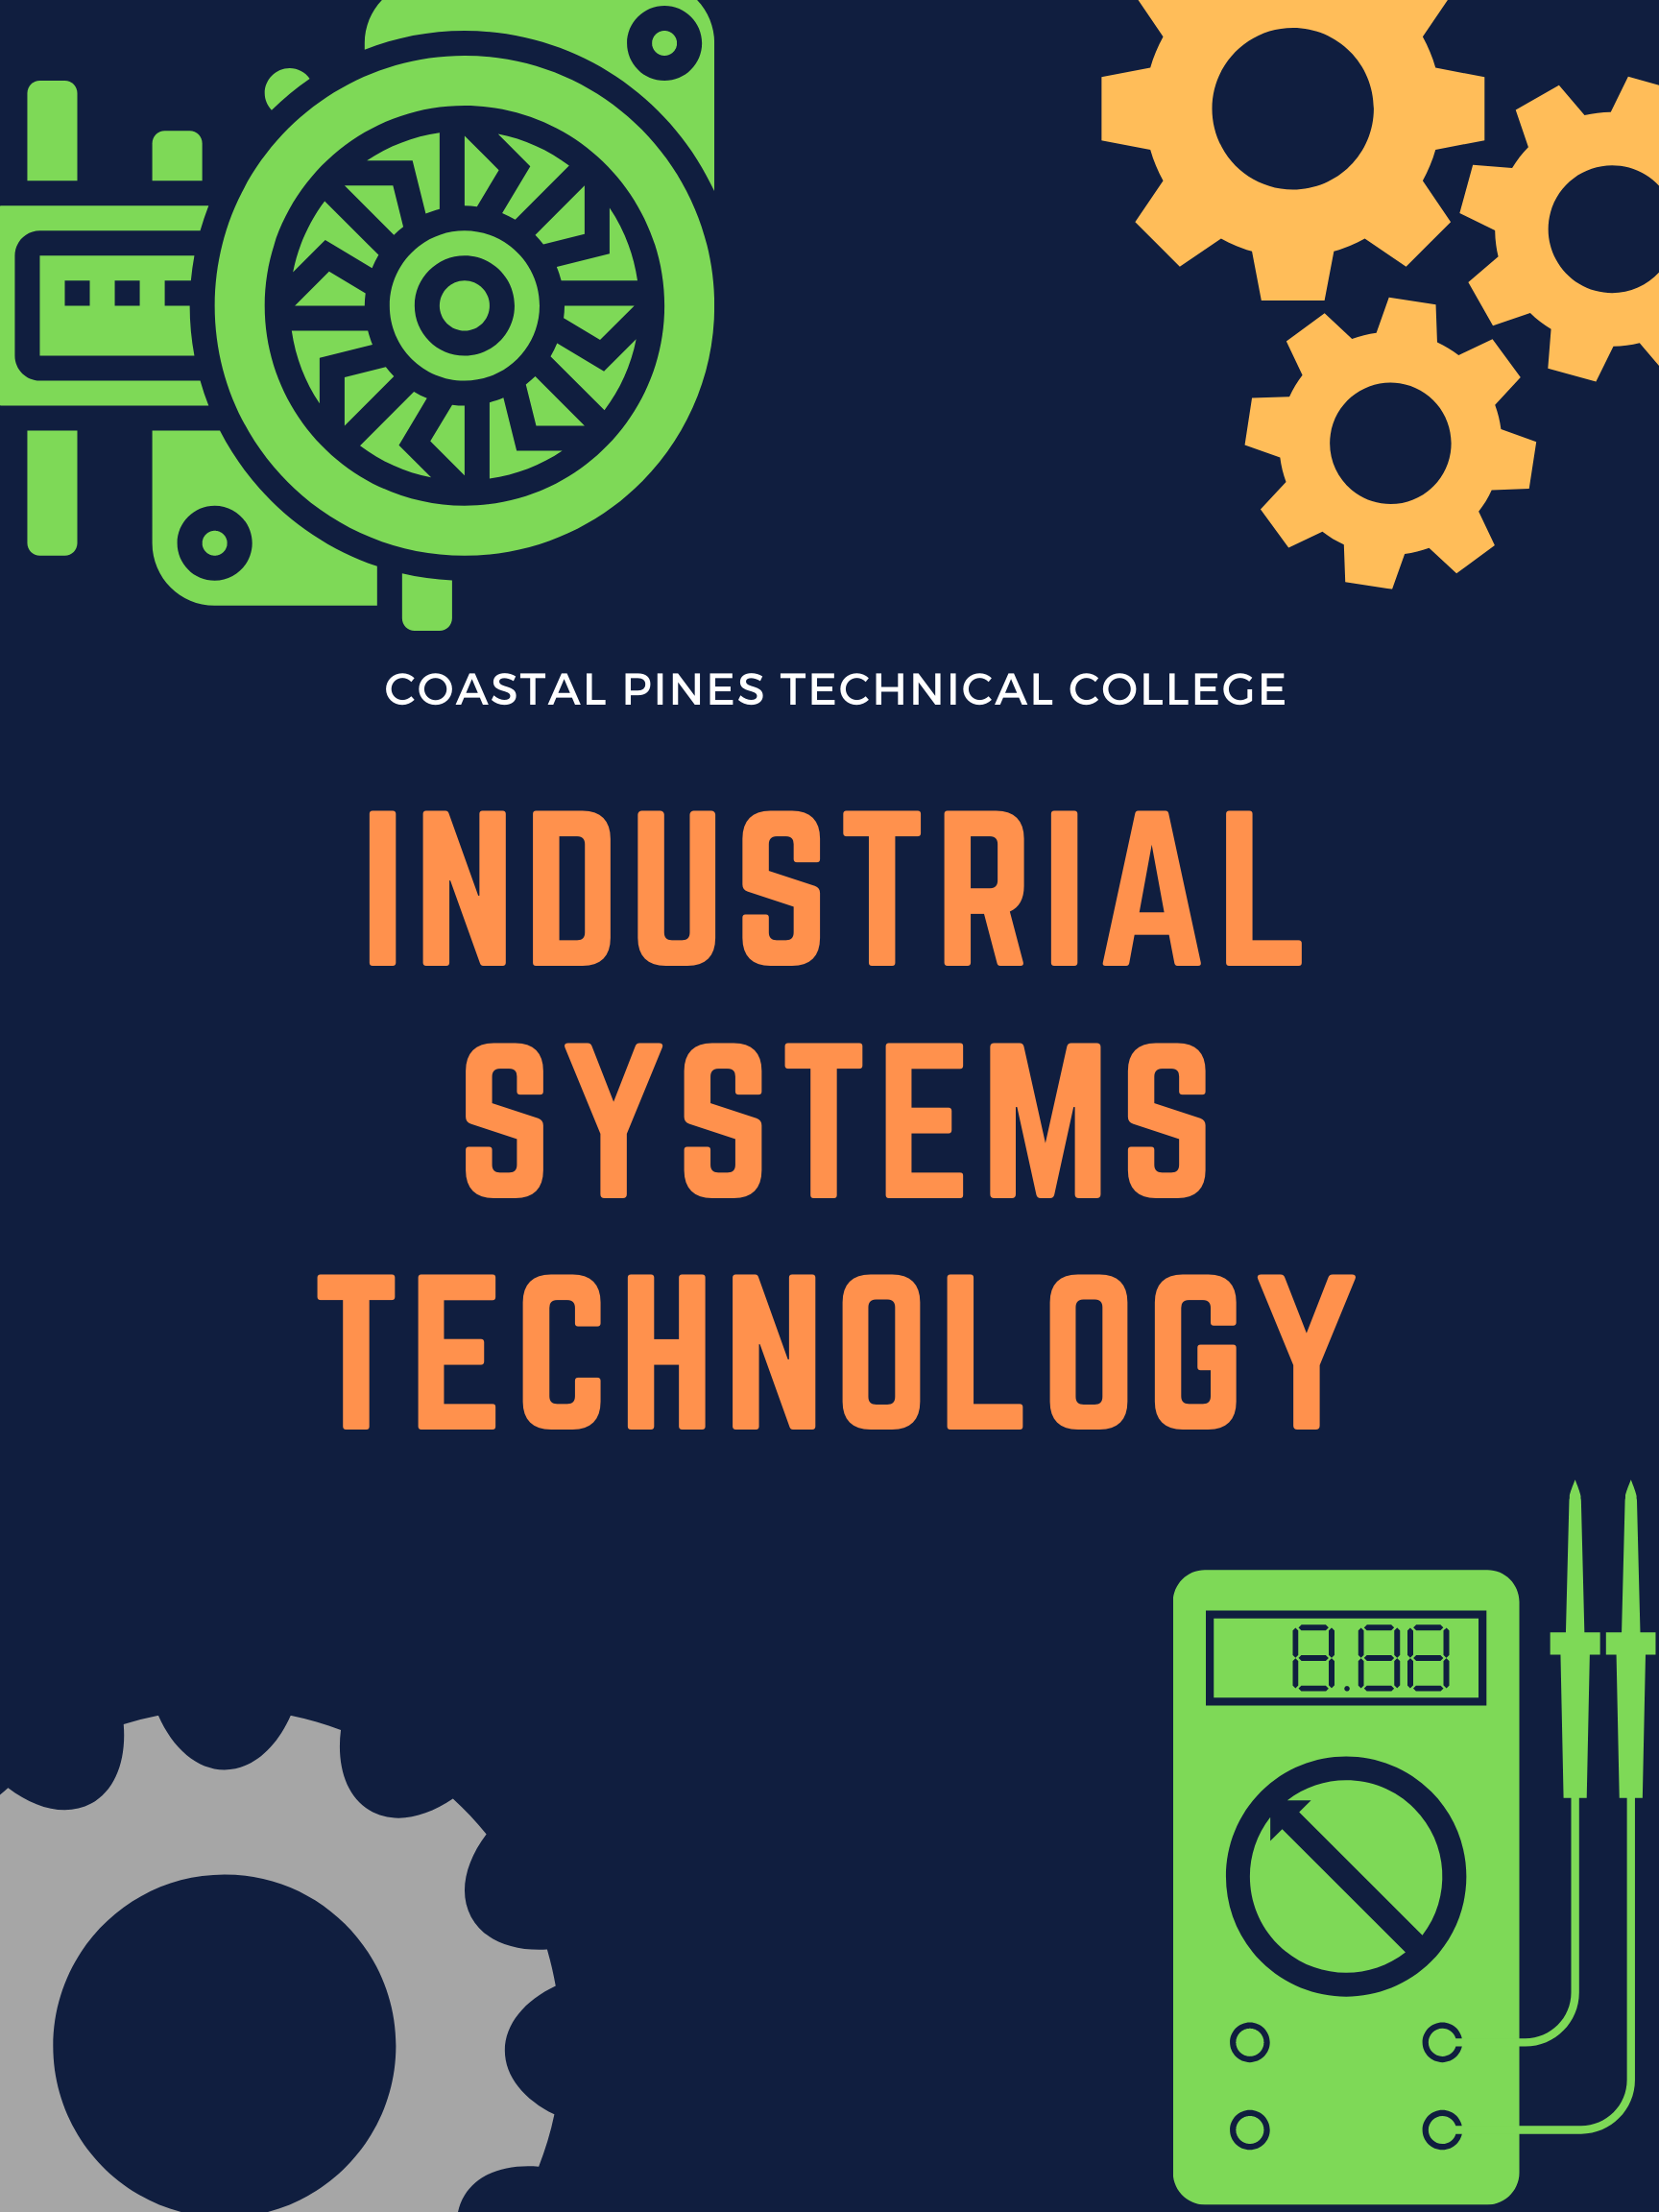 Coastal Pines Technical College Industrial Systems Technology